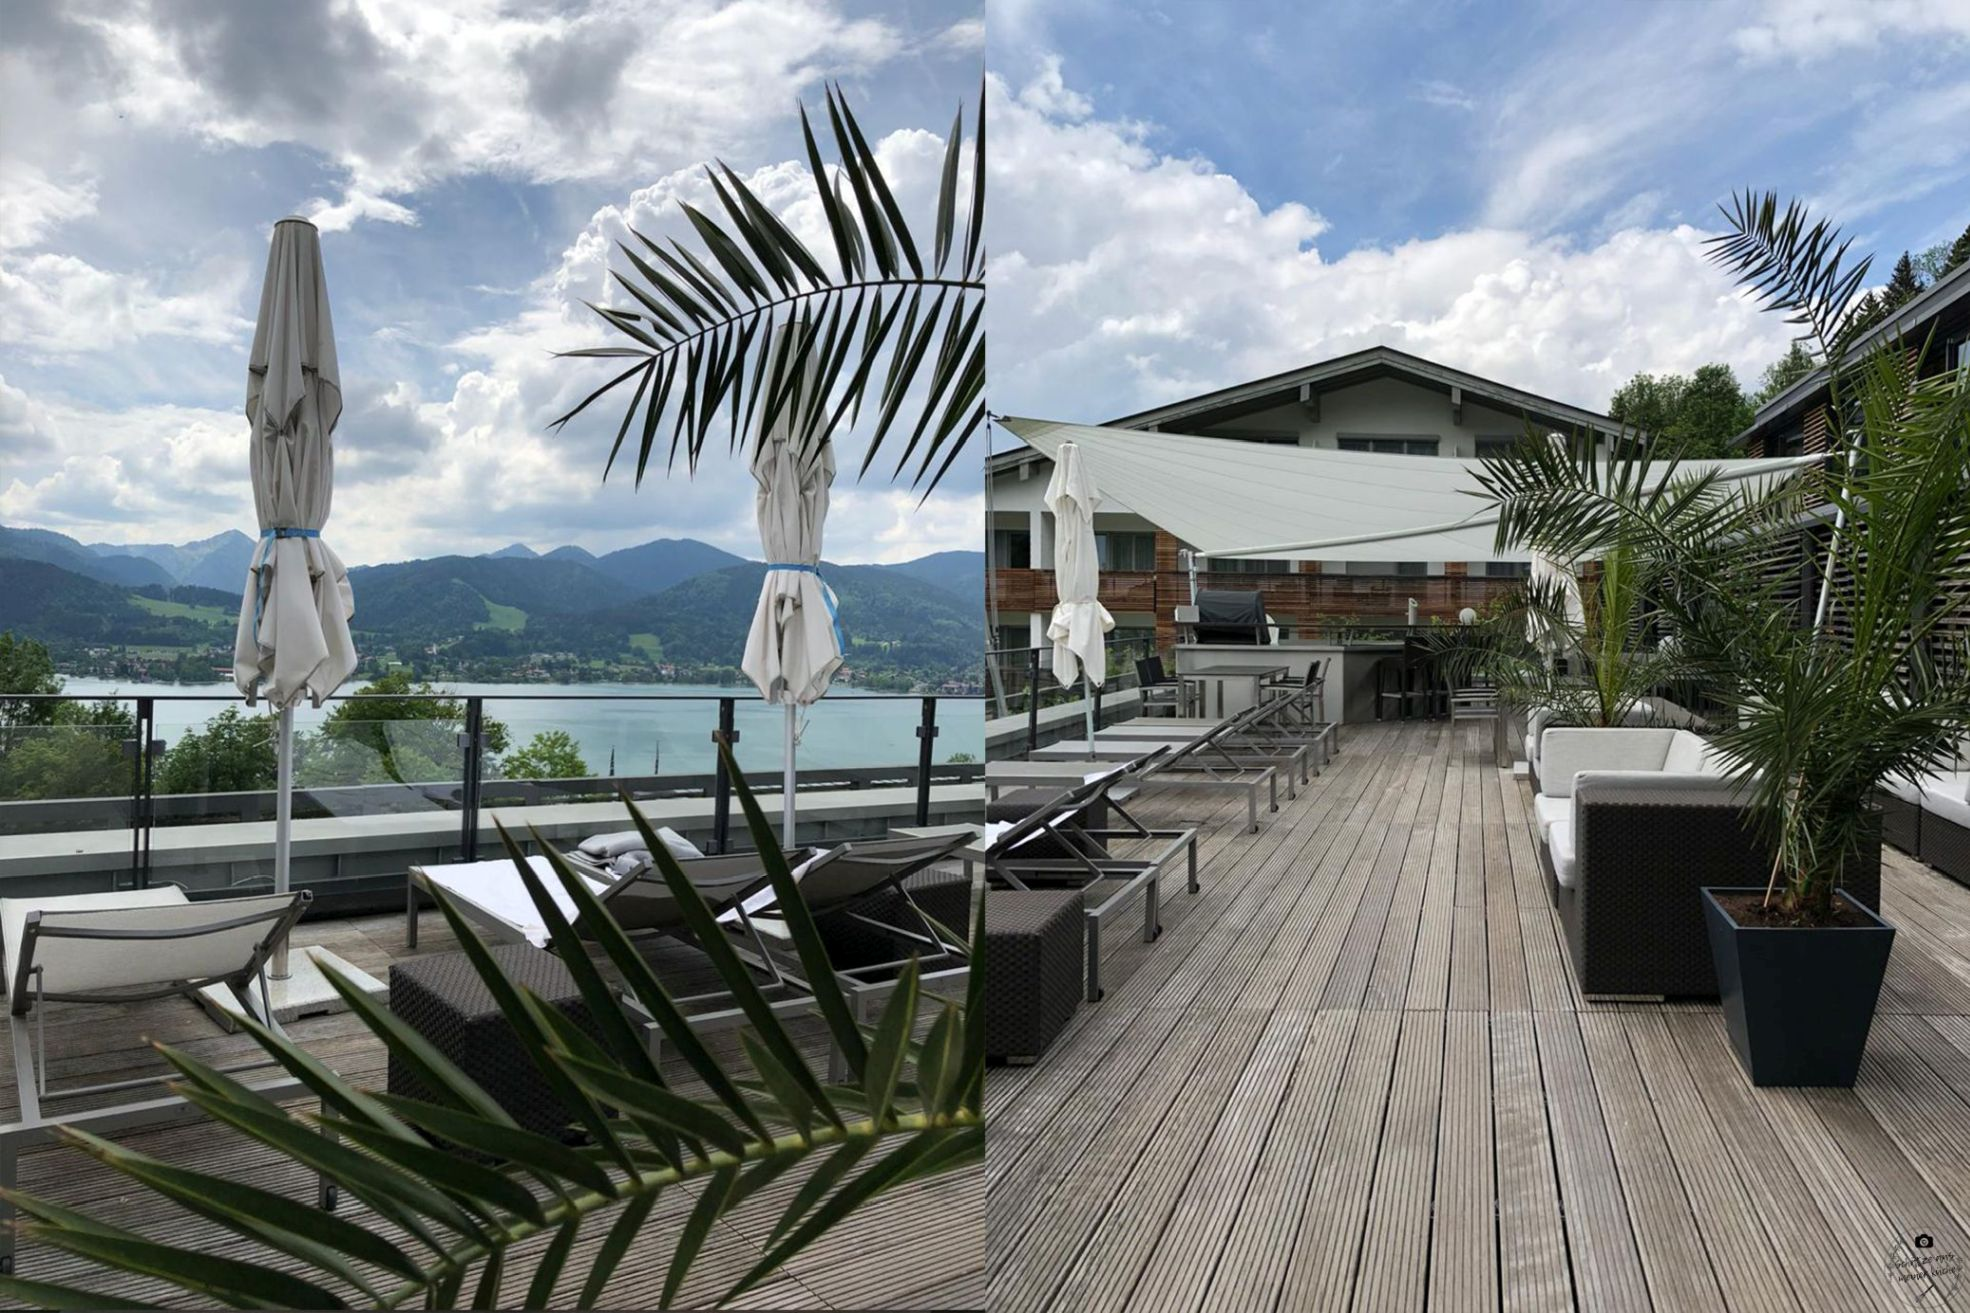 DAS TEGERNSEE SPA Wellness